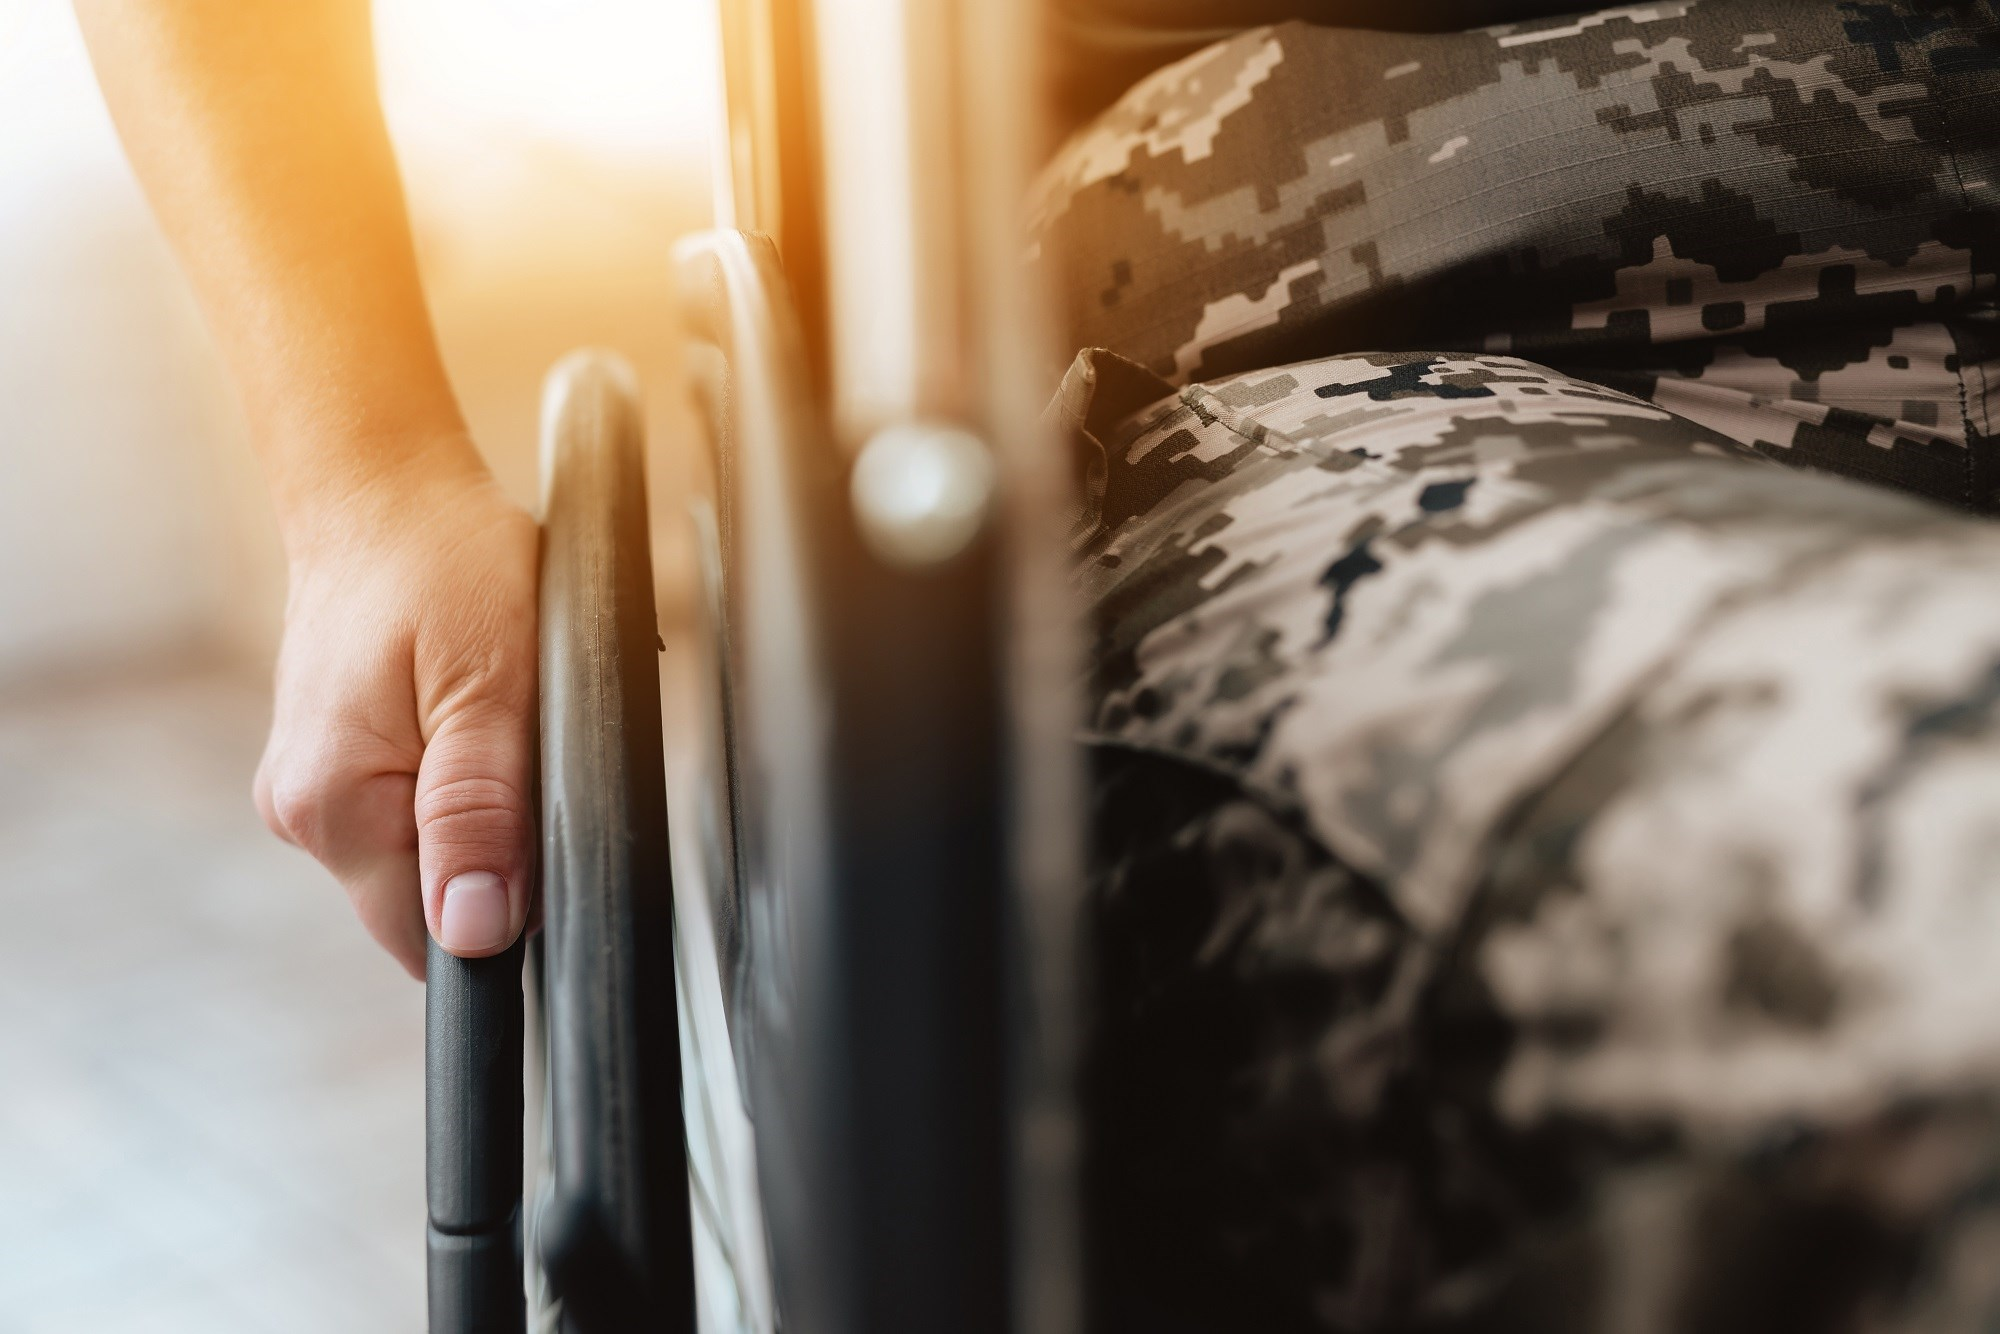 As services and facilities are eliminated, the VA's ability to operate as a health care provider could be diminished, resulting in de facto privatization.